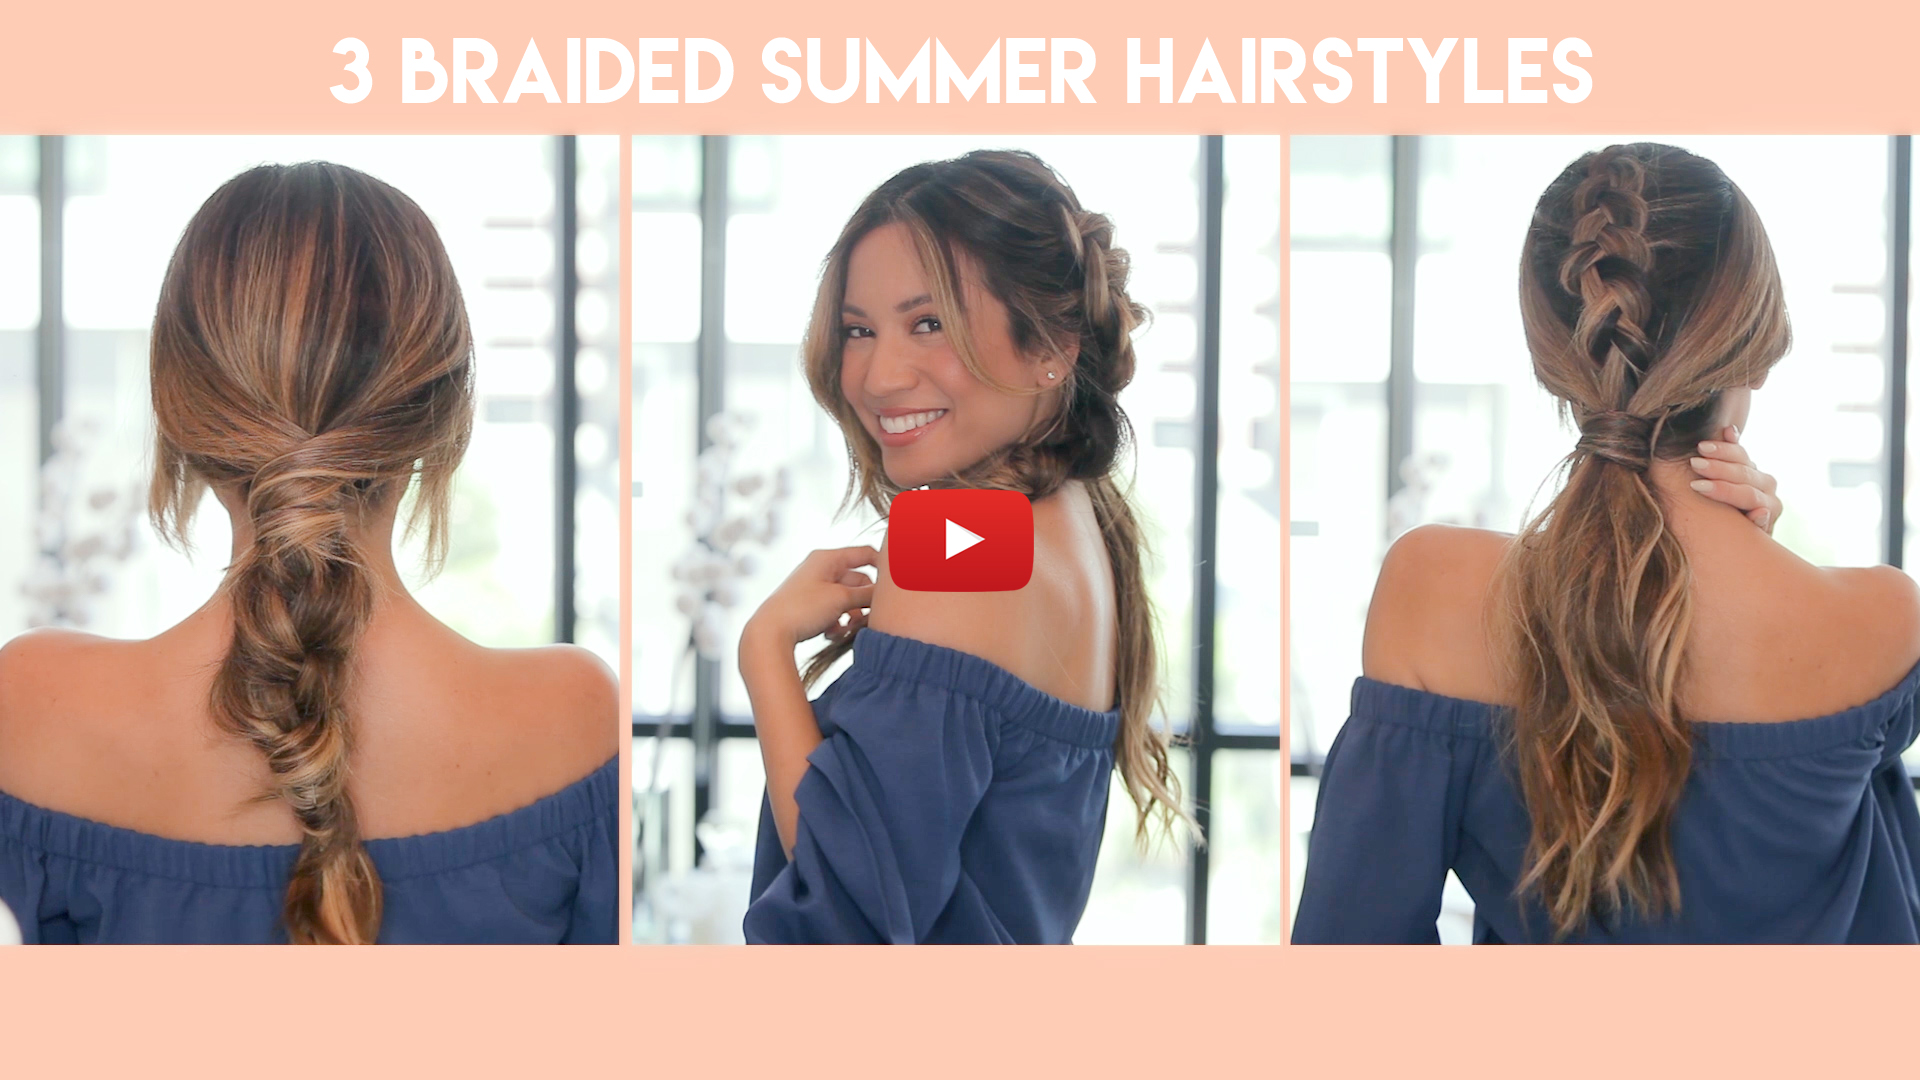 Watch: 3 Braided Hairstyles For The Summer - Jessi Malay